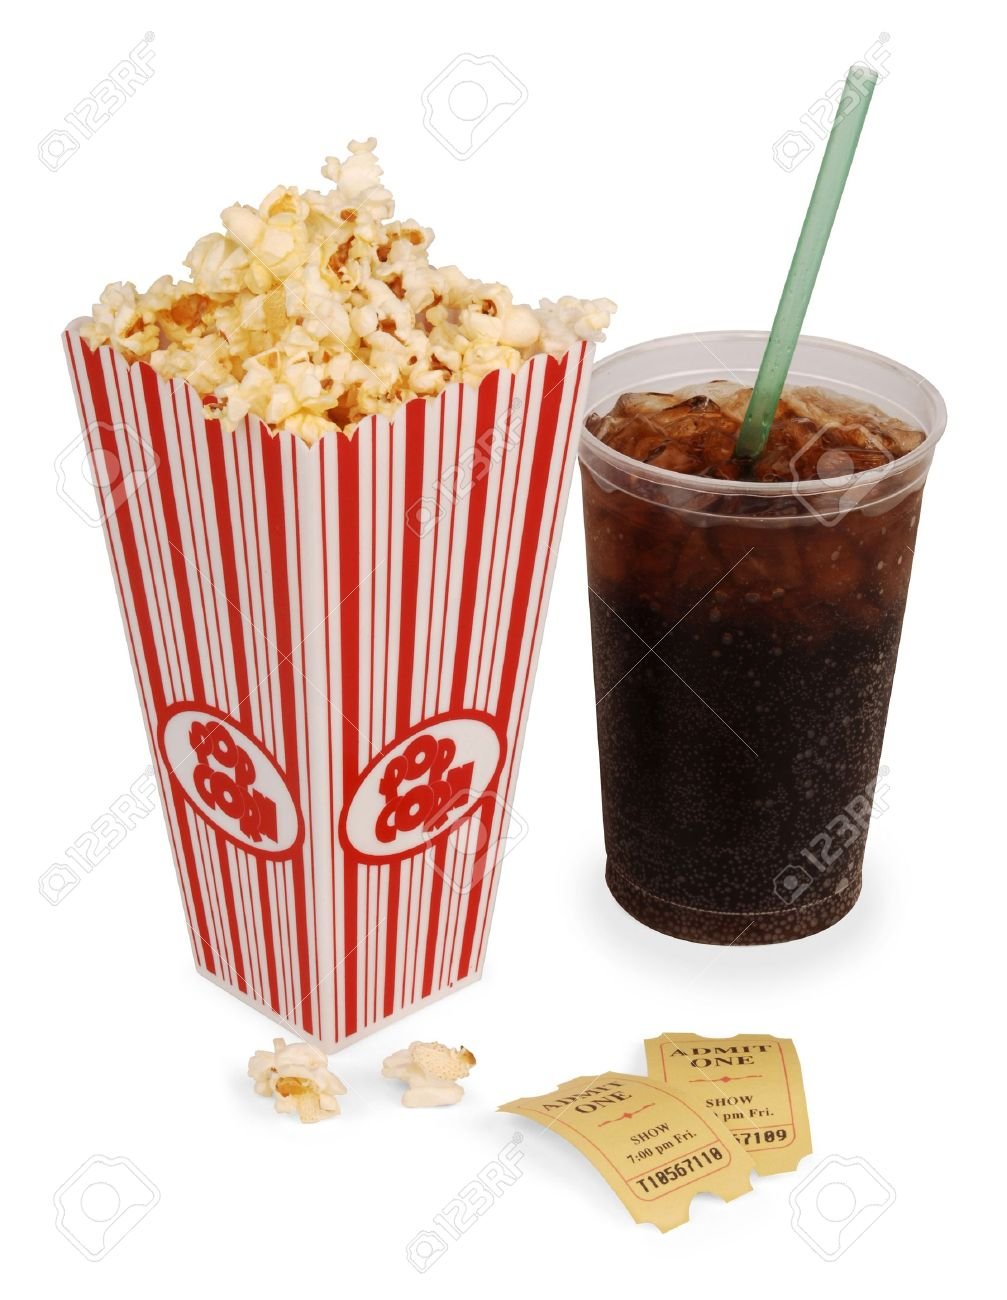 Popcorn, soda, & tickets isolated on white with clipping path - 7052687